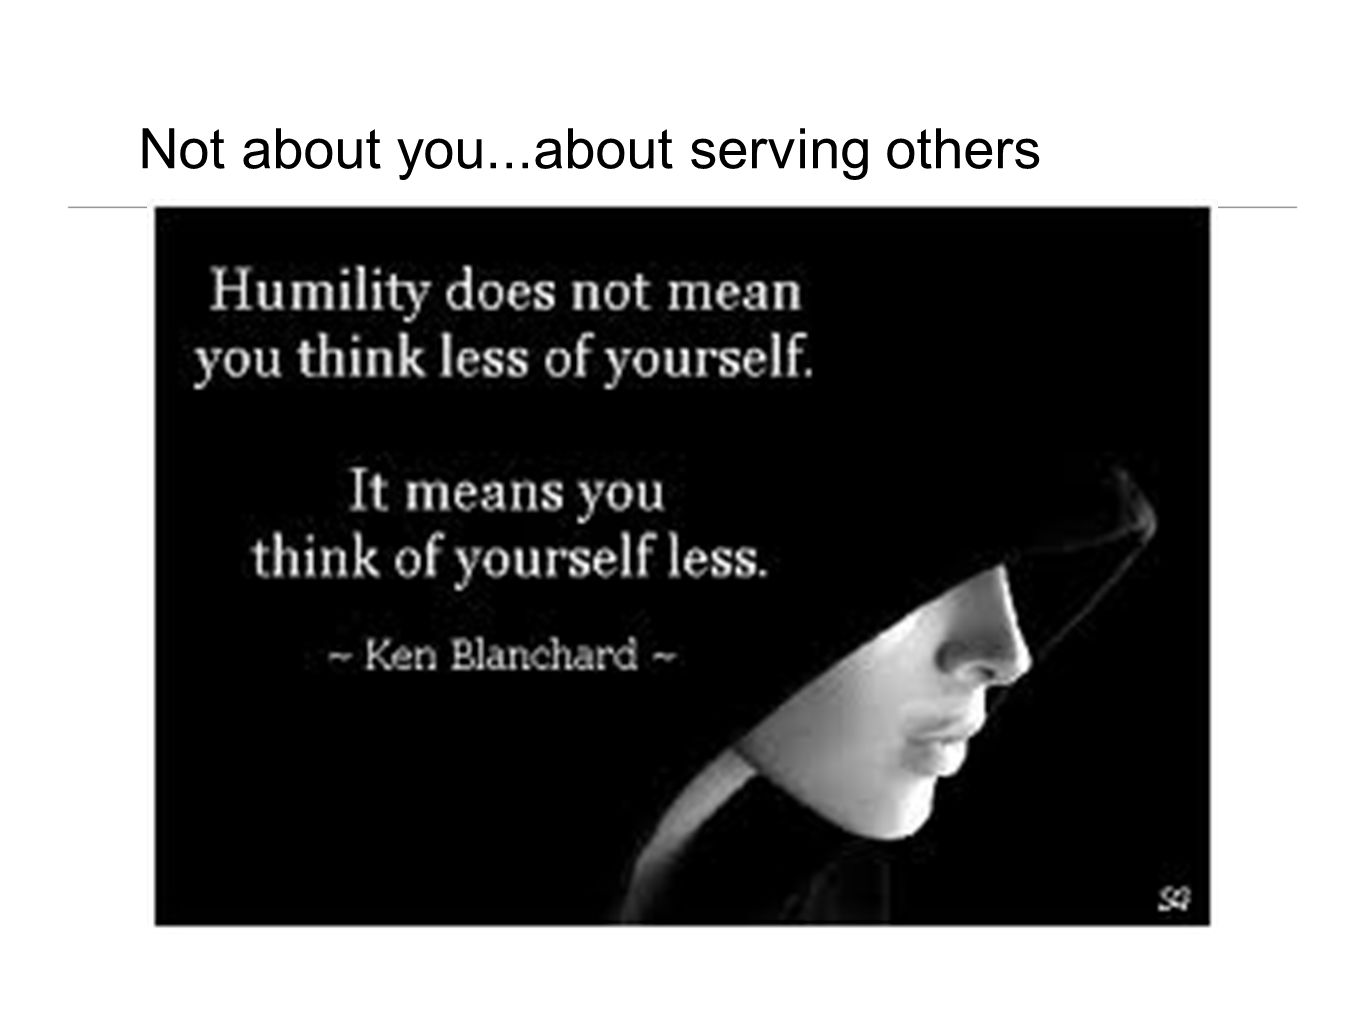 Not about you...about serving others